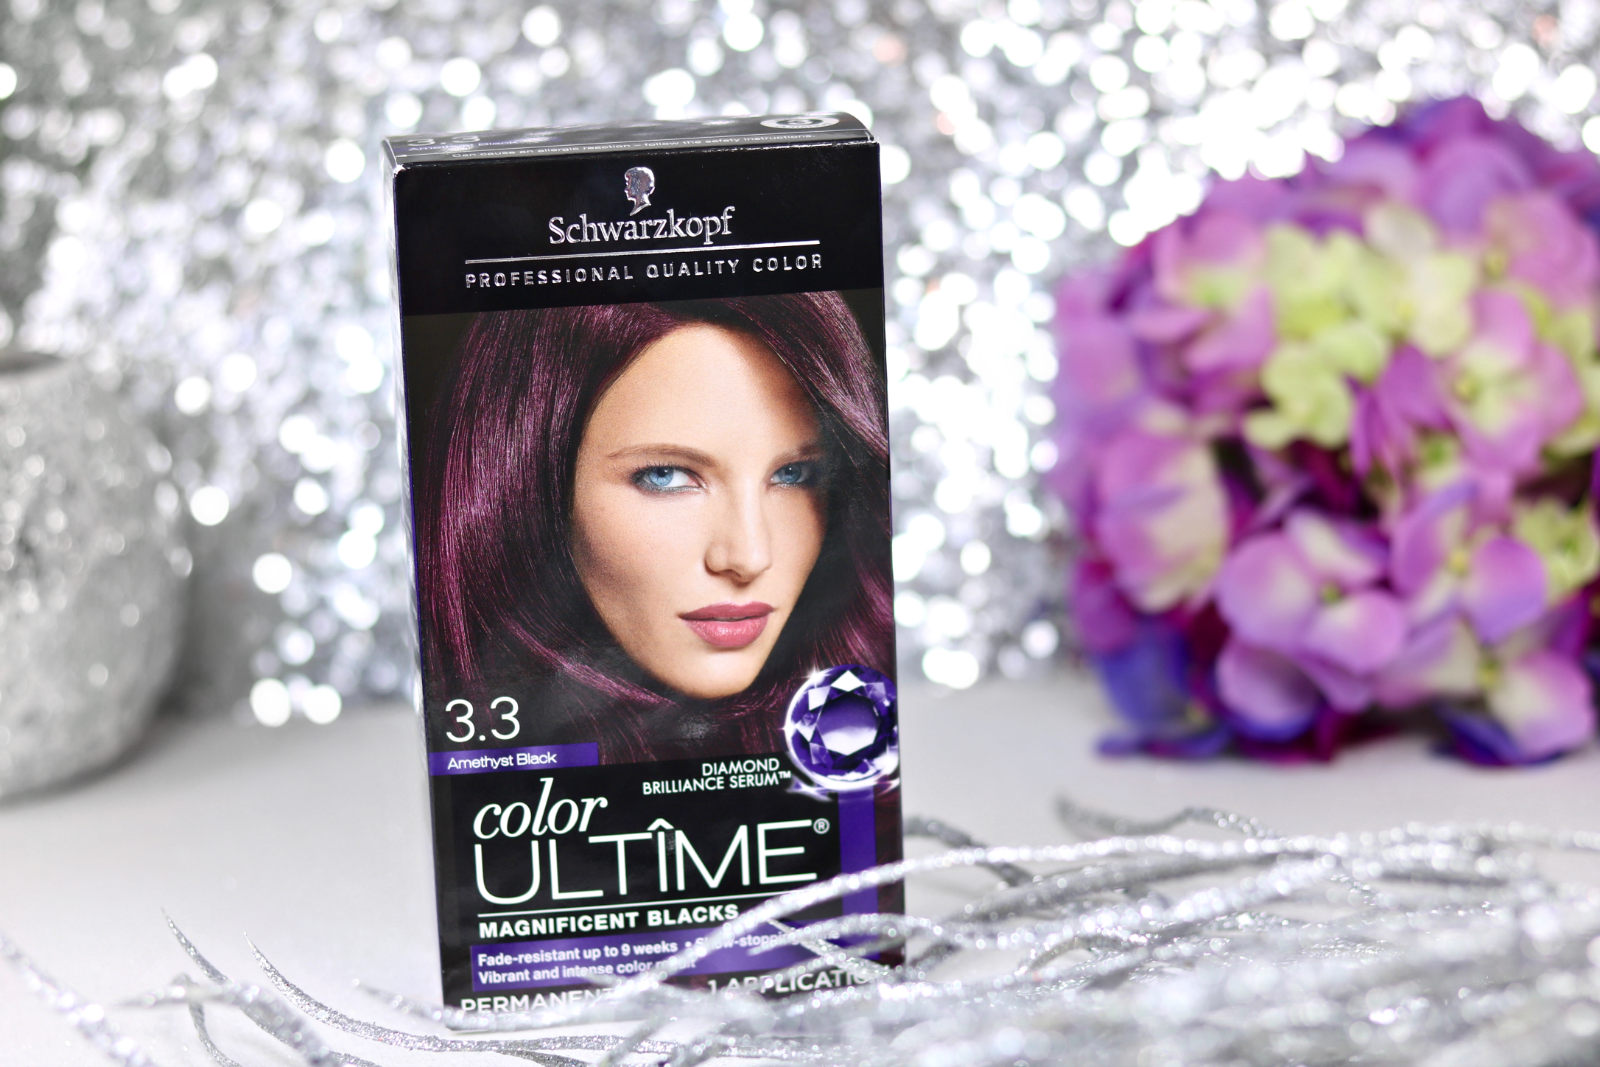 Bold Hair Color At Home With Schwarzkopf Color Ultime At Walmart